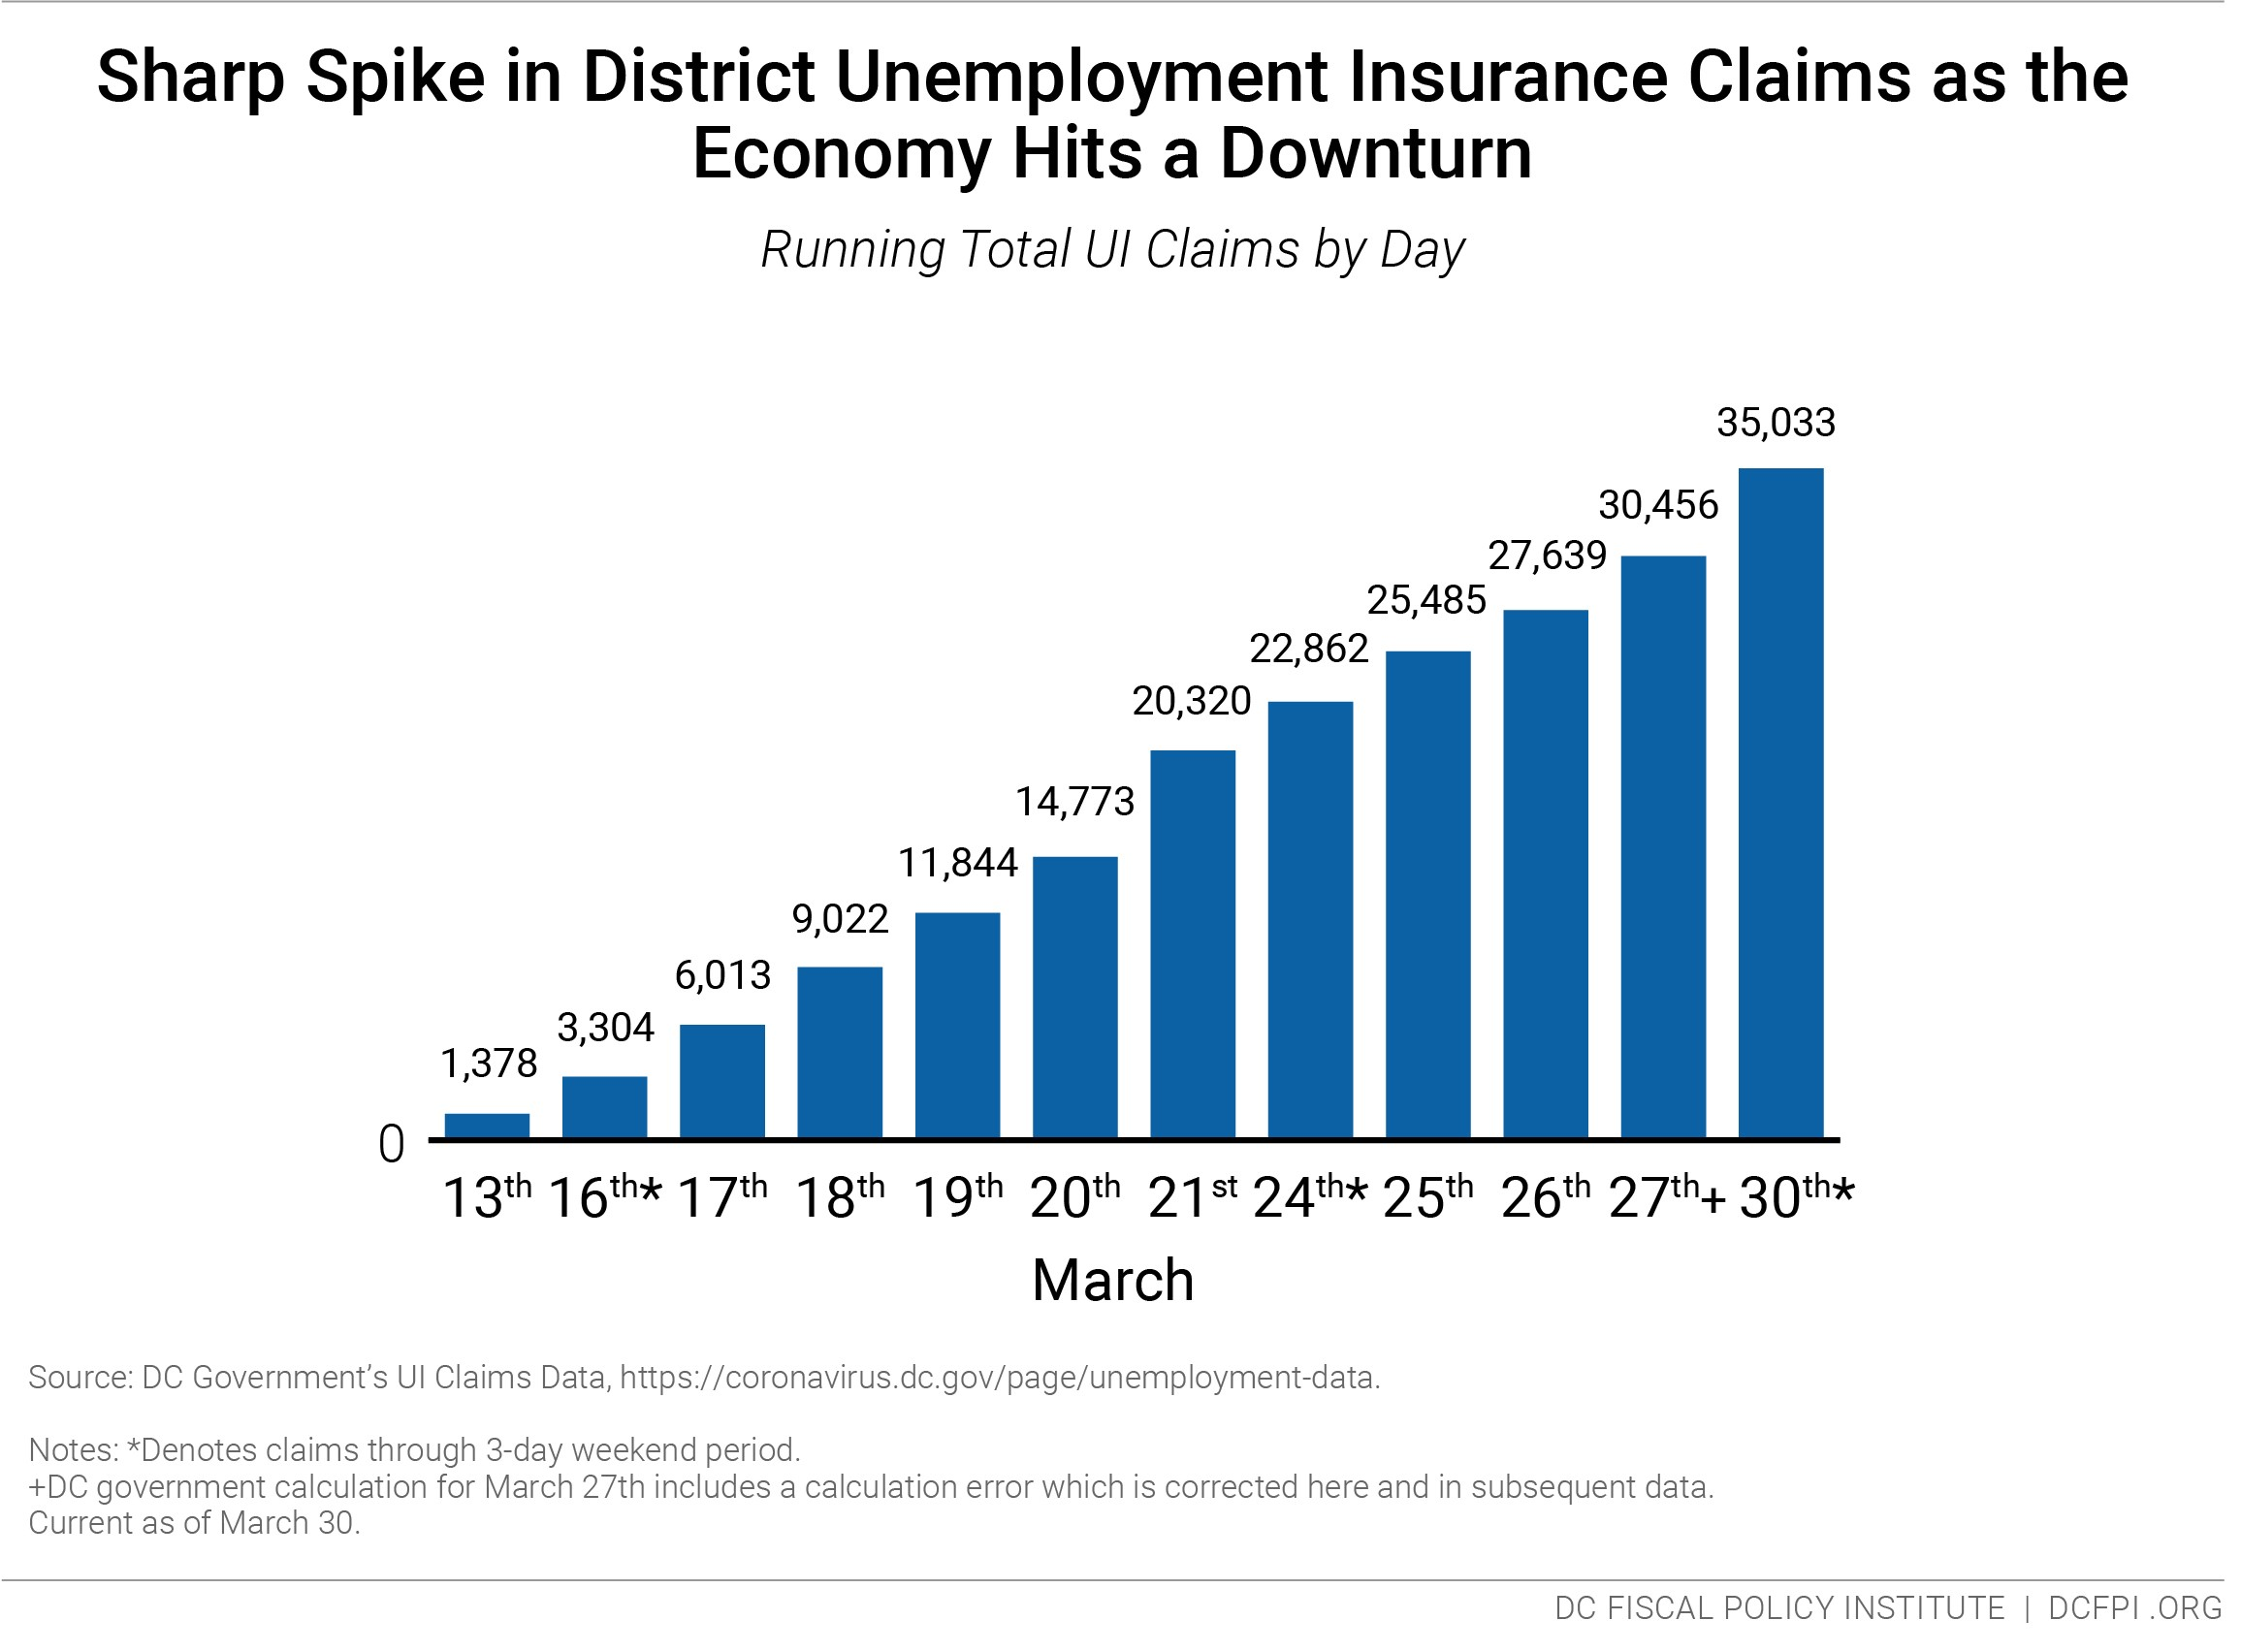 District Unemployment Insurance Claims Spike in the Wake of COVID-19